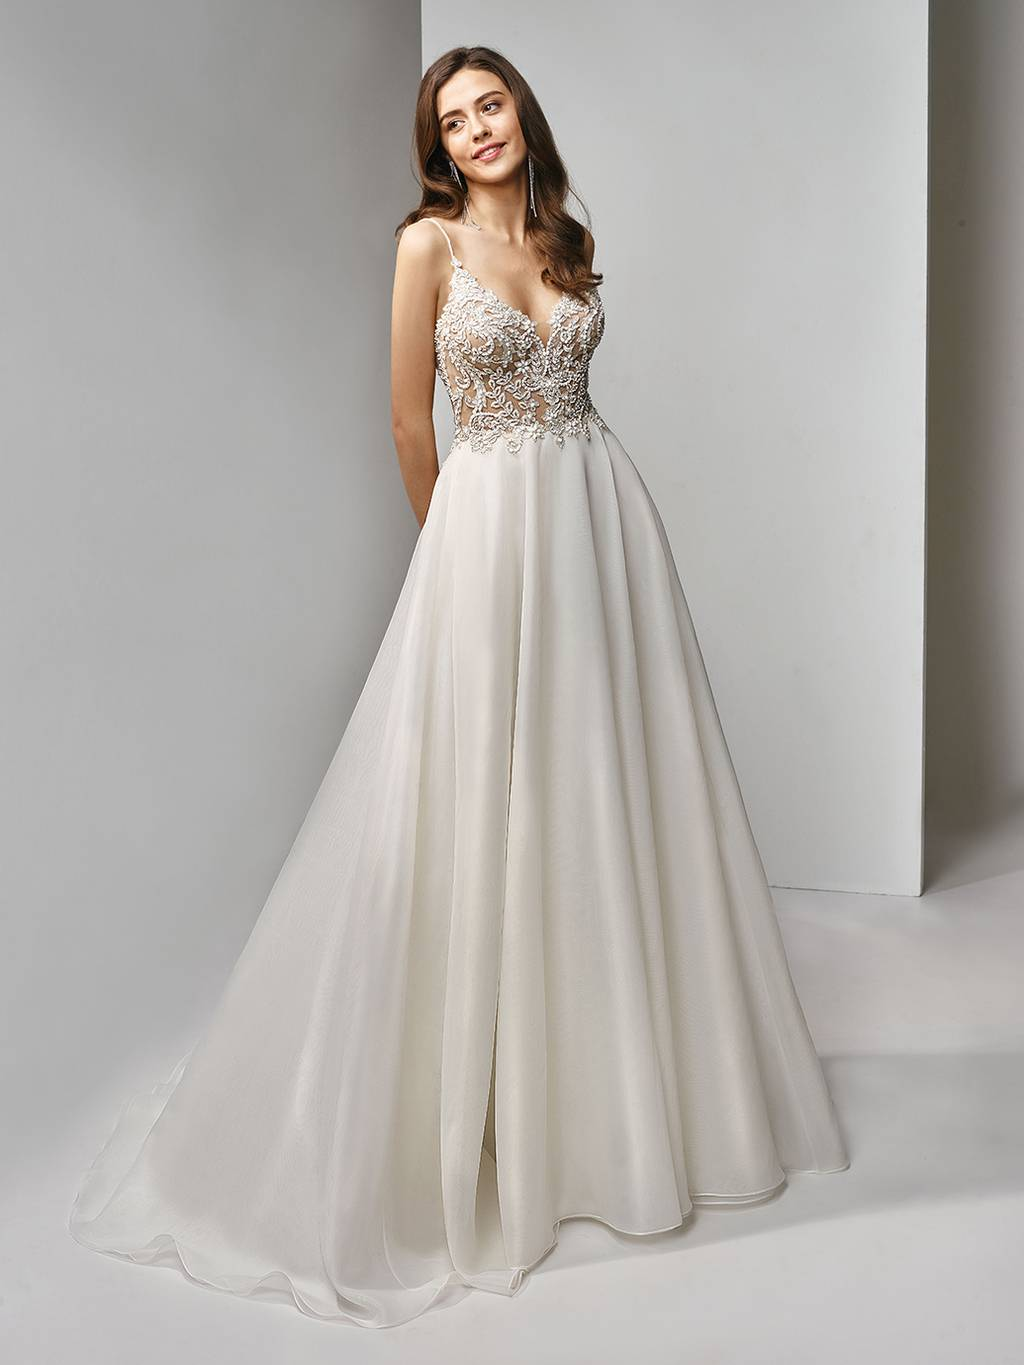 2019 - Beautiful Collection   Wedding Gowns,Veils ...Gorgeous Wedding Gowns 2012